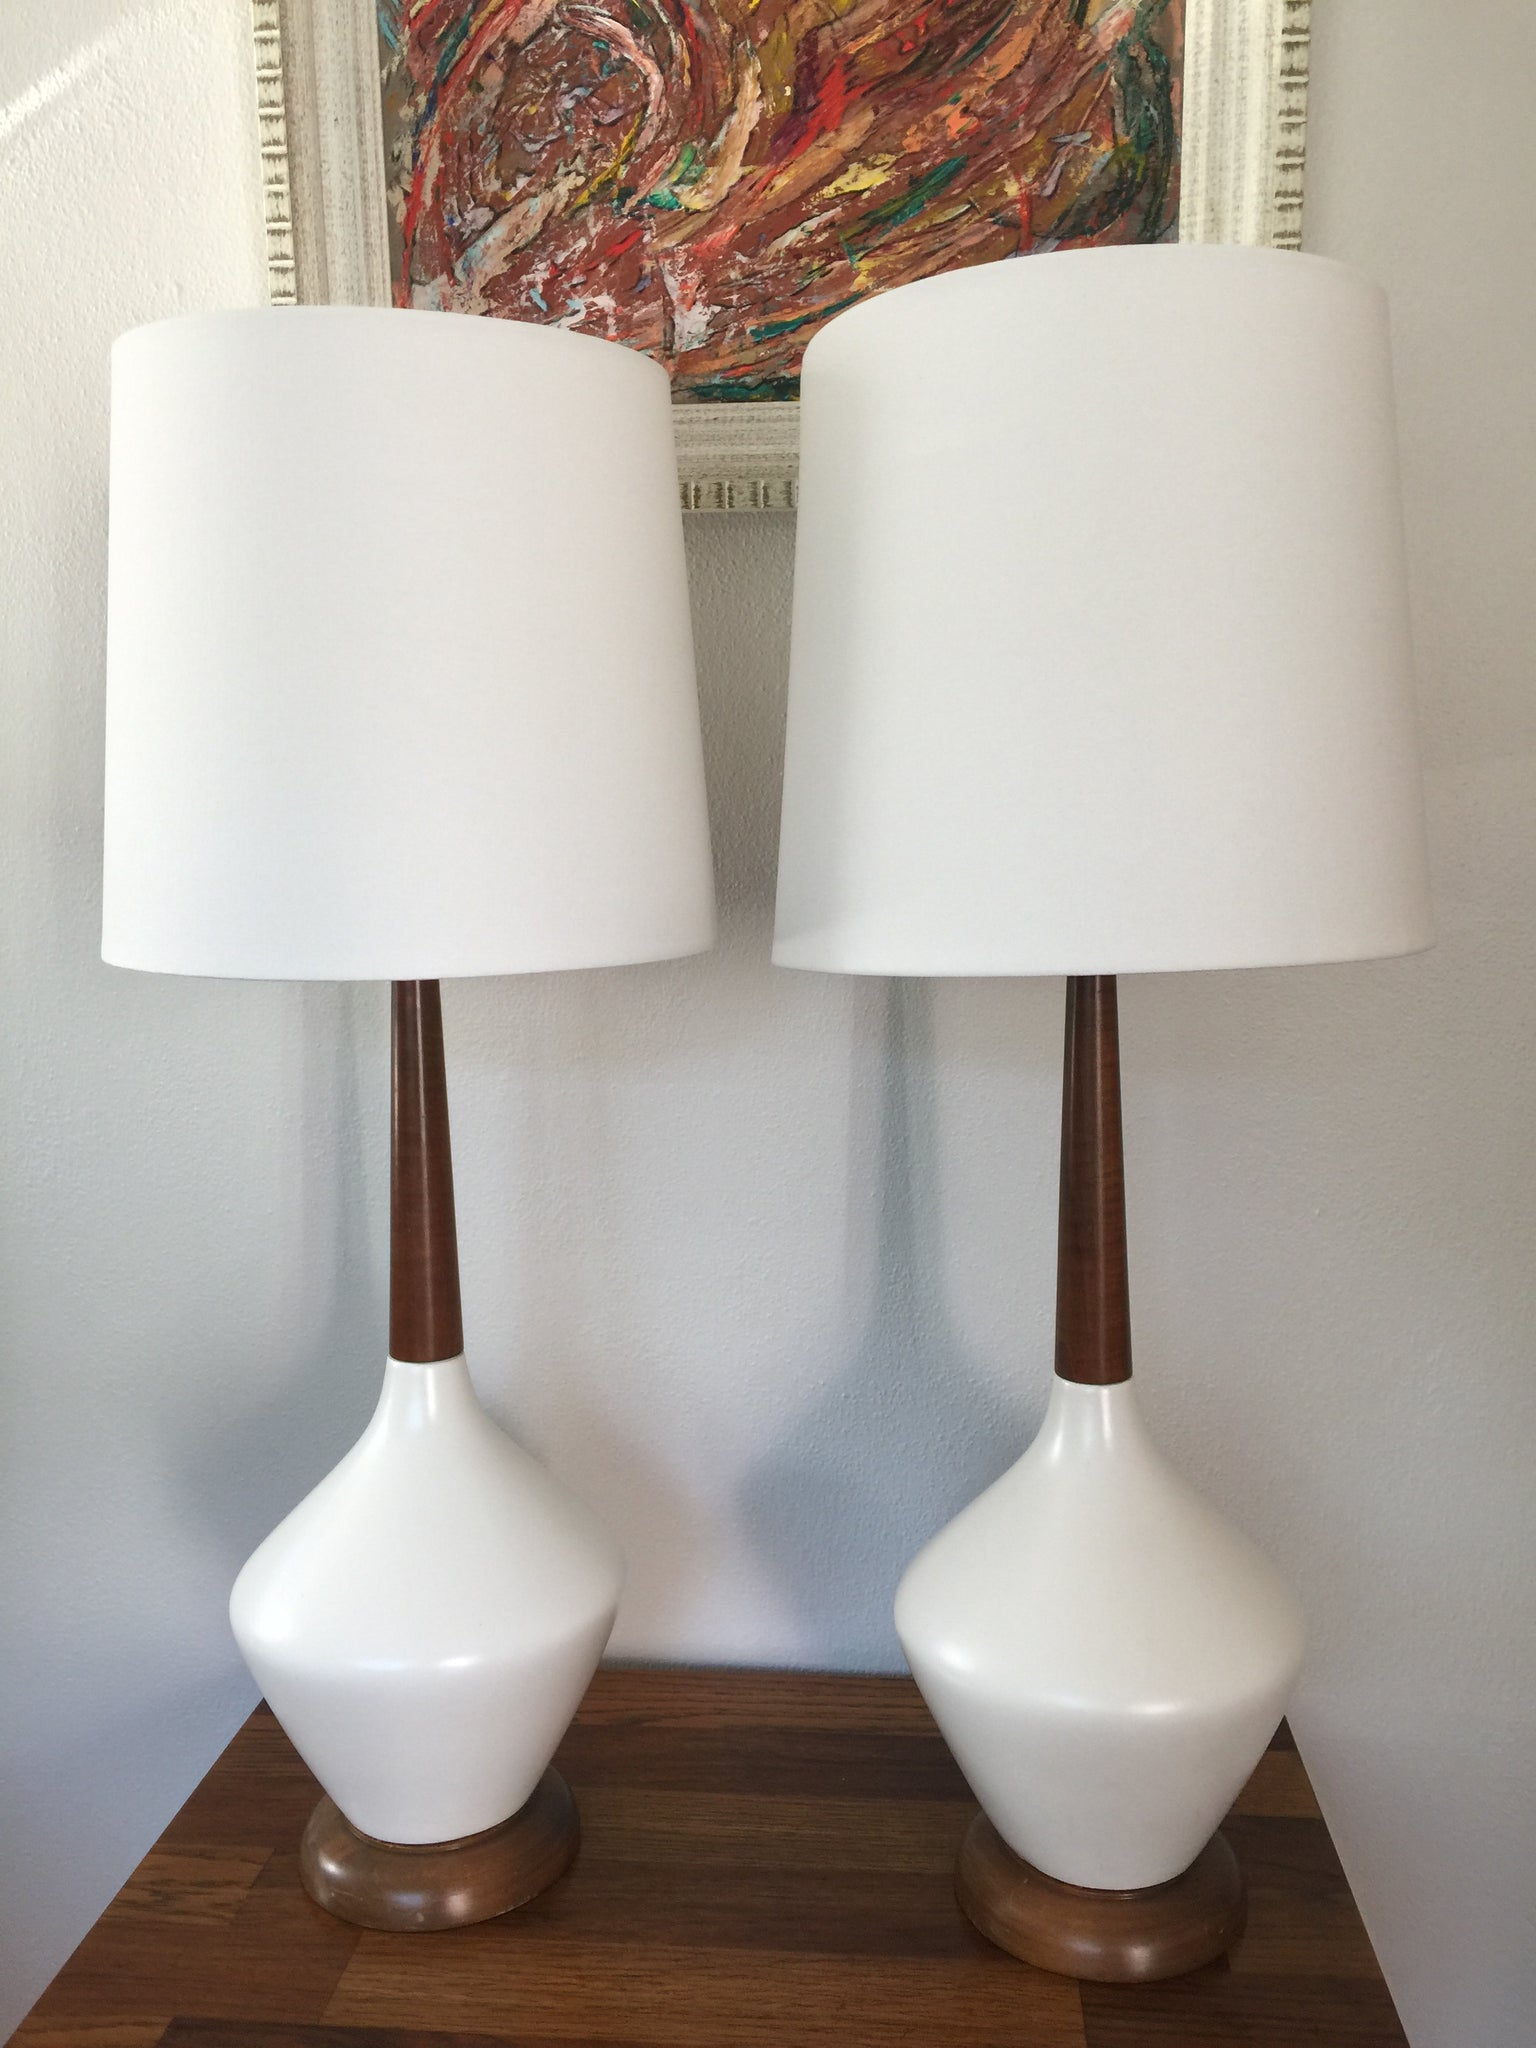 Vintage Mid Century Modern Ceramic Walnut Lamps In White